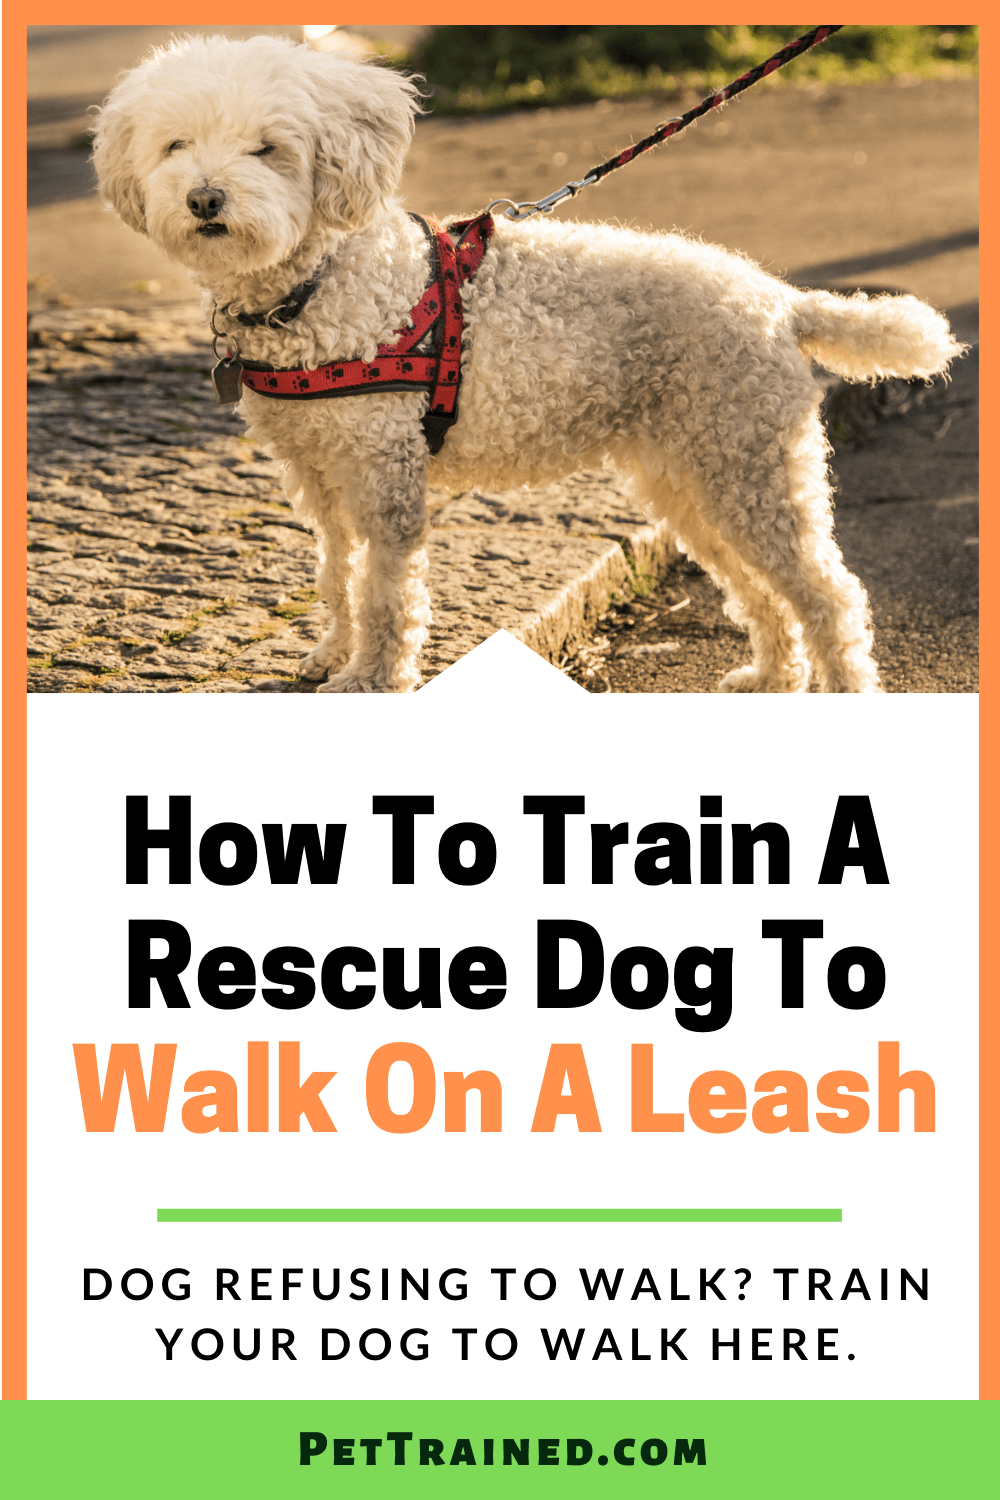 How to teach a rescue dog to walk on a leash